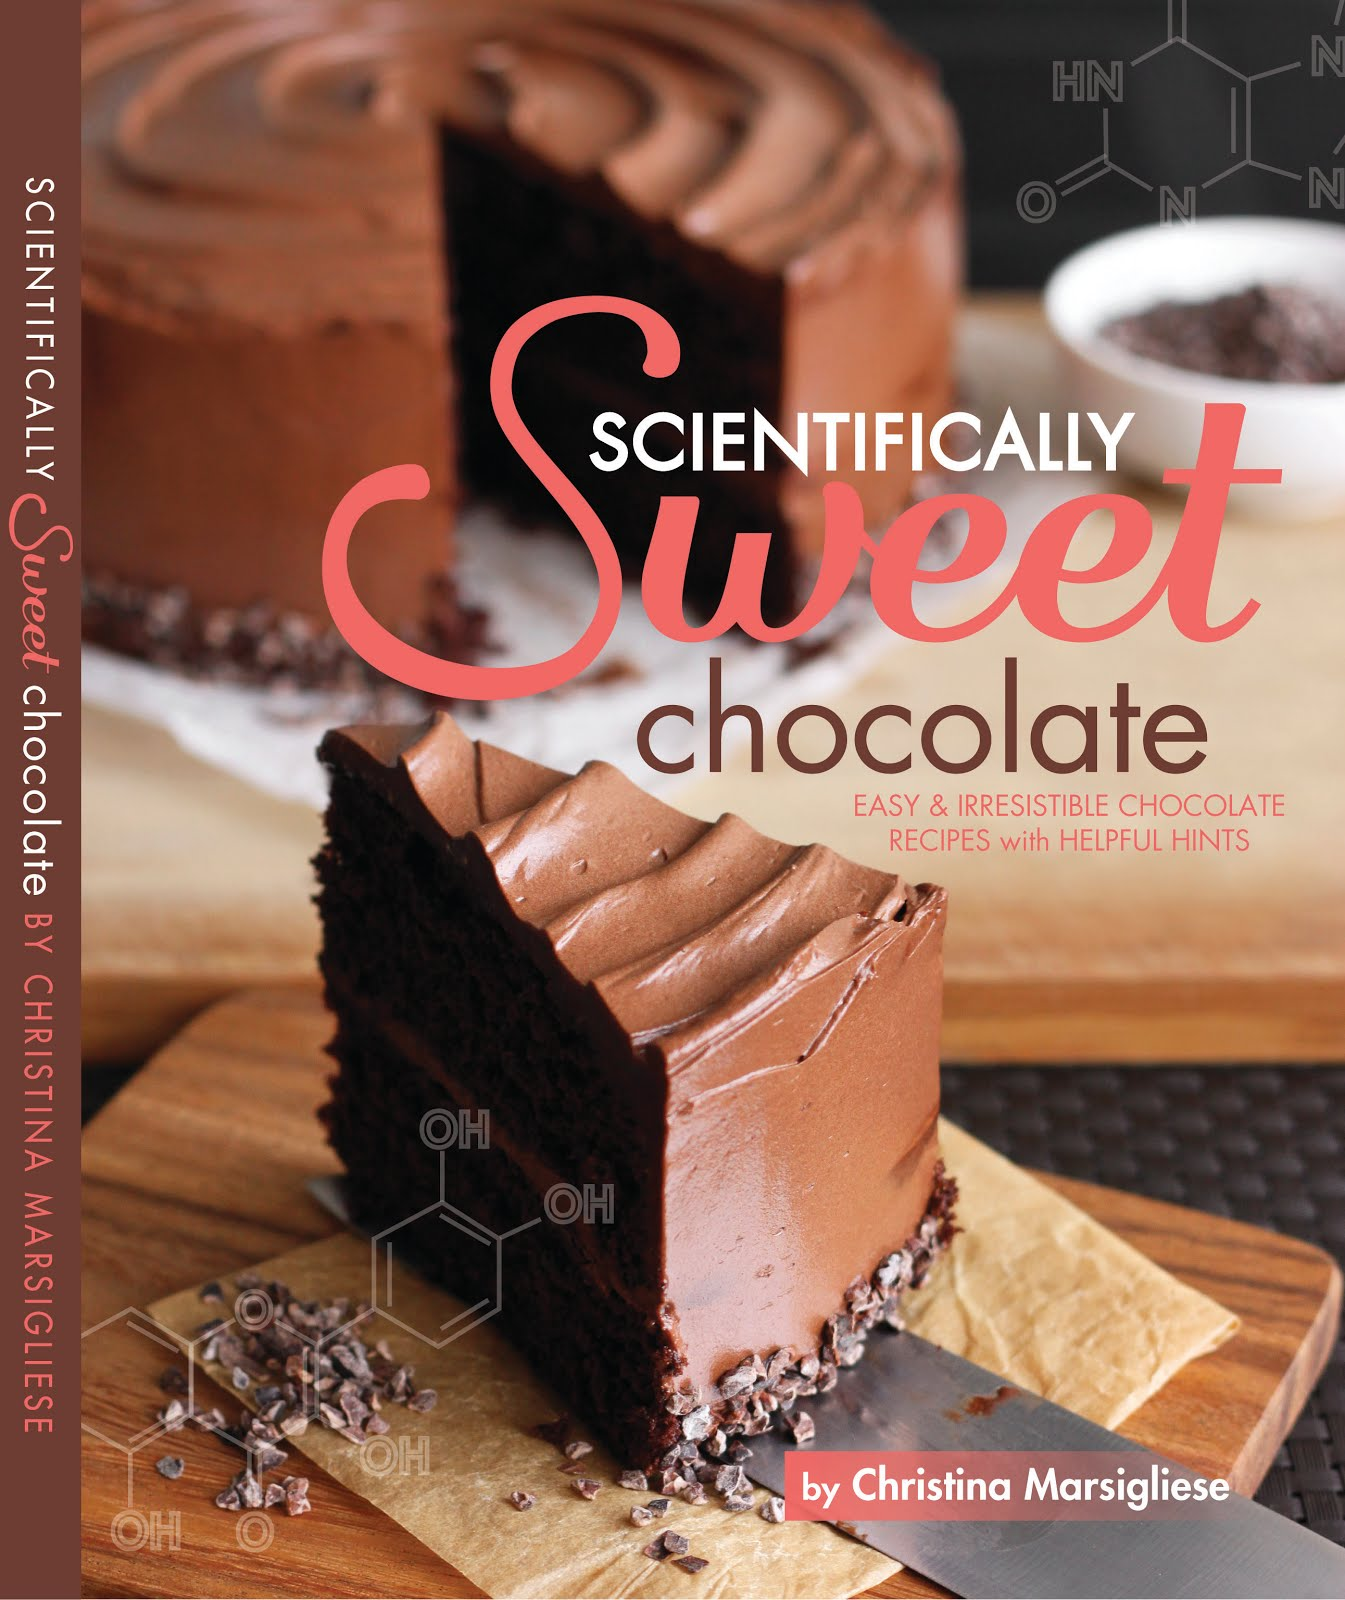 Scientifically Sweet CHOCOLATE